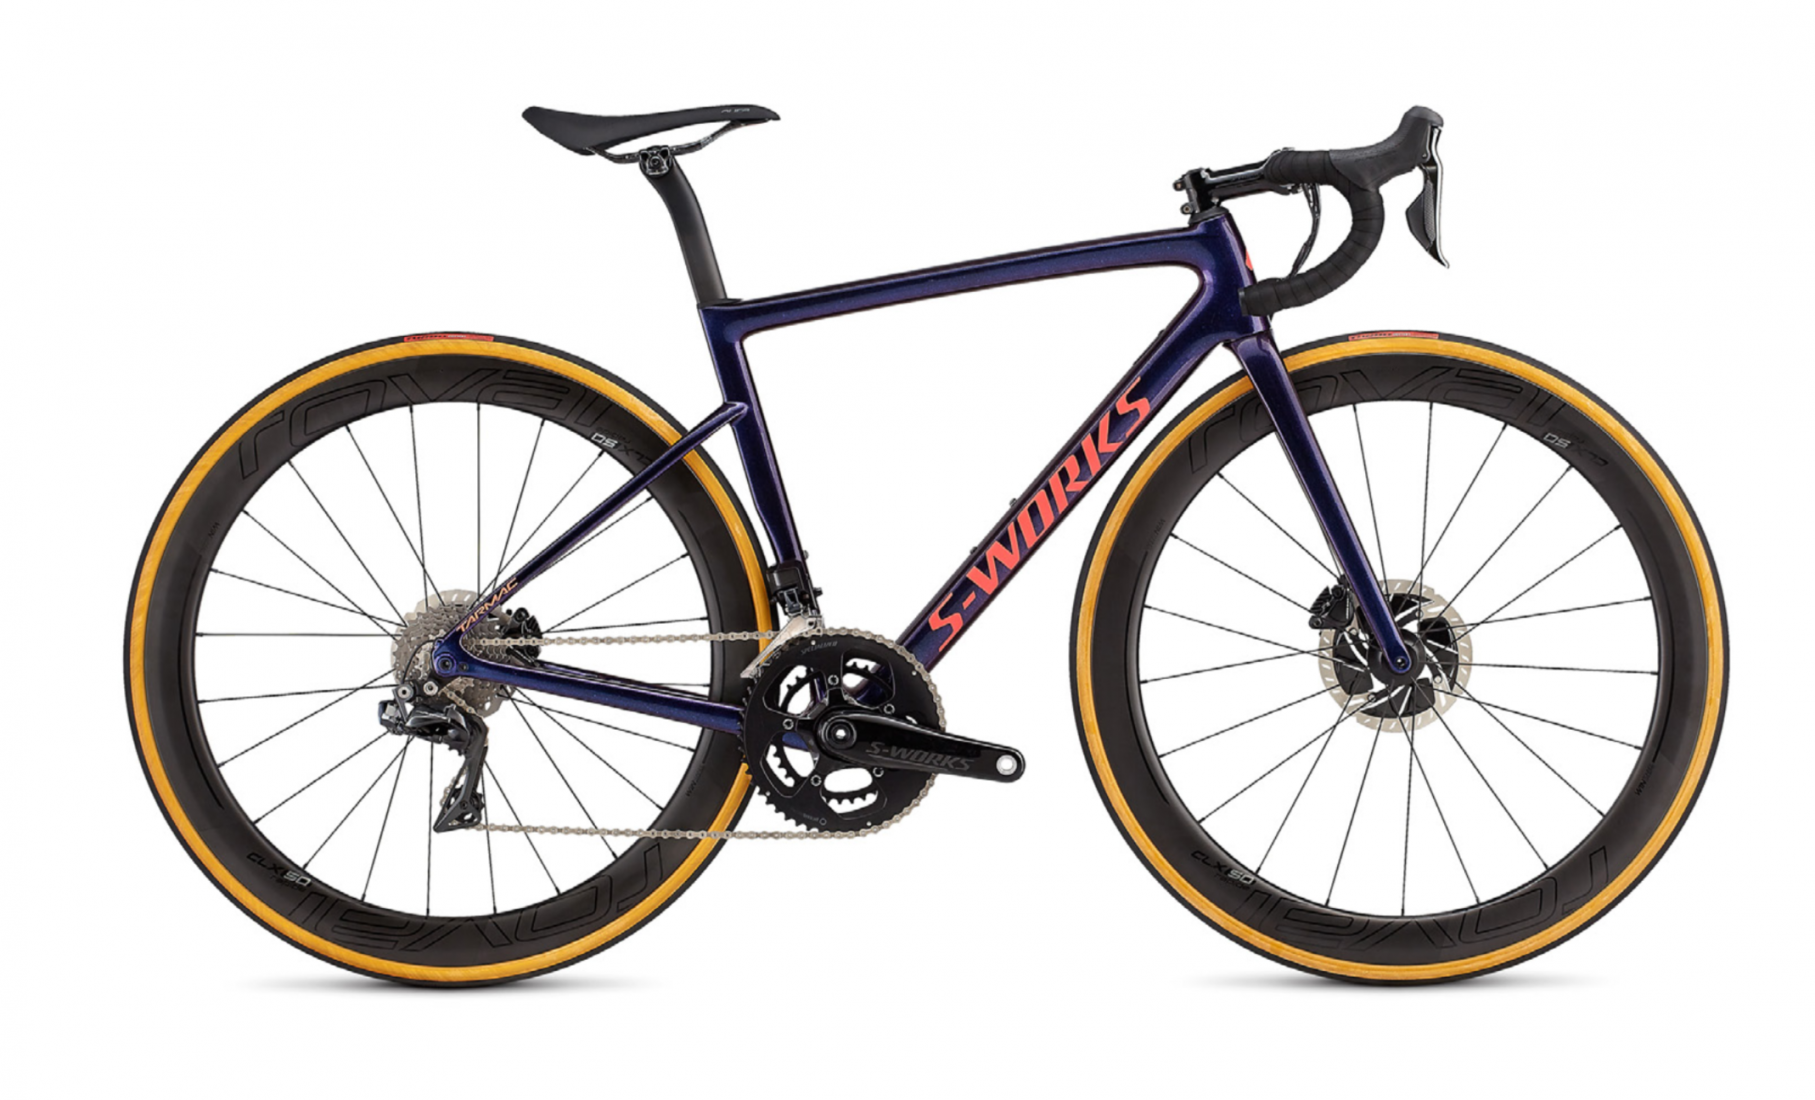 Nuova Specialized S'Works Tarmac Disc